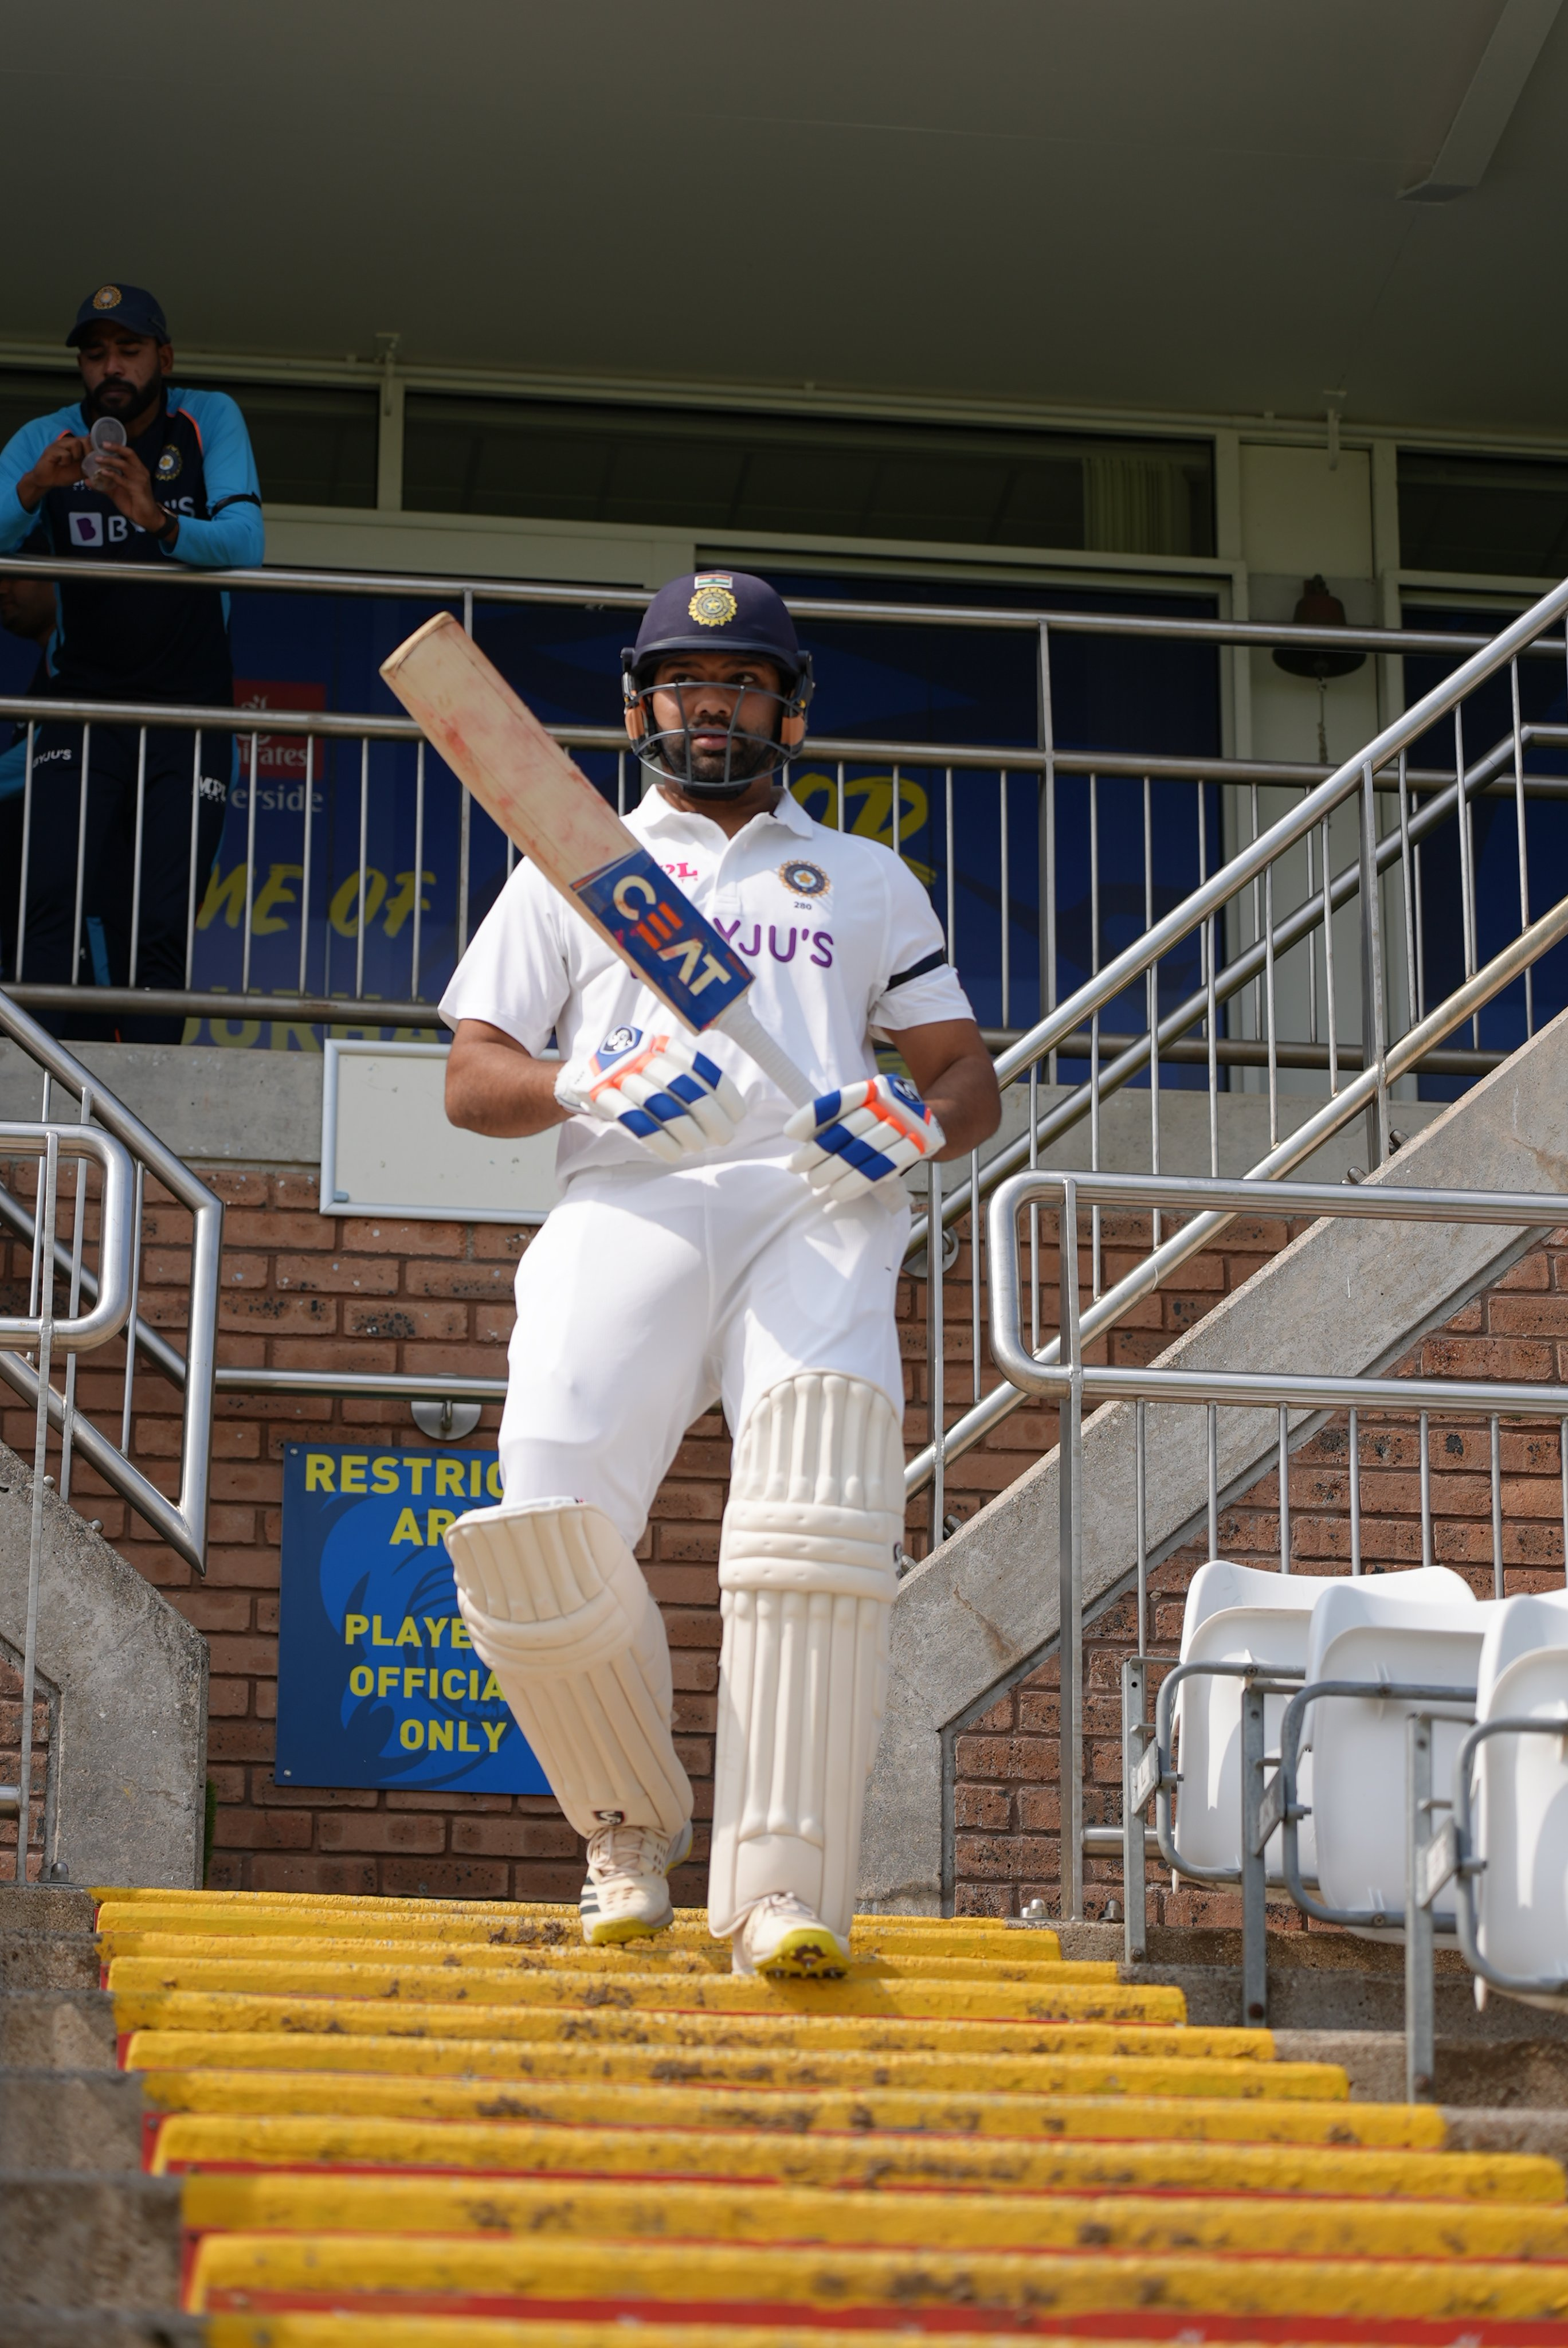 Rohit Sharma is captaining the Indians in the practice game | BCCI Twitter